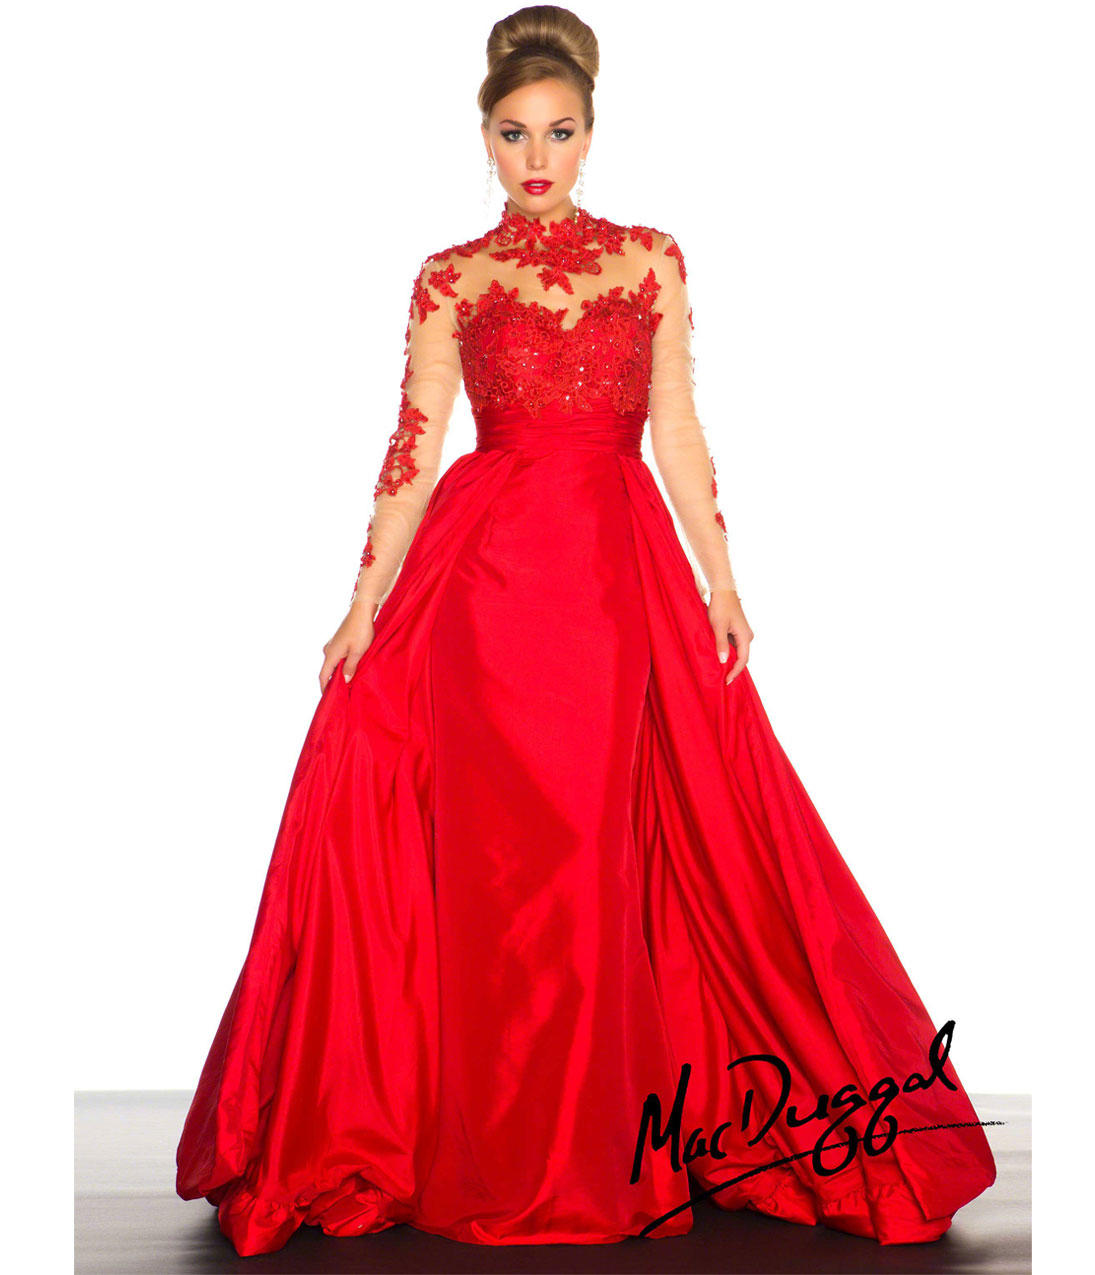 PRE-ORDER) Mac Duggal 2014 Prom Dresses from Unique Vintage | in